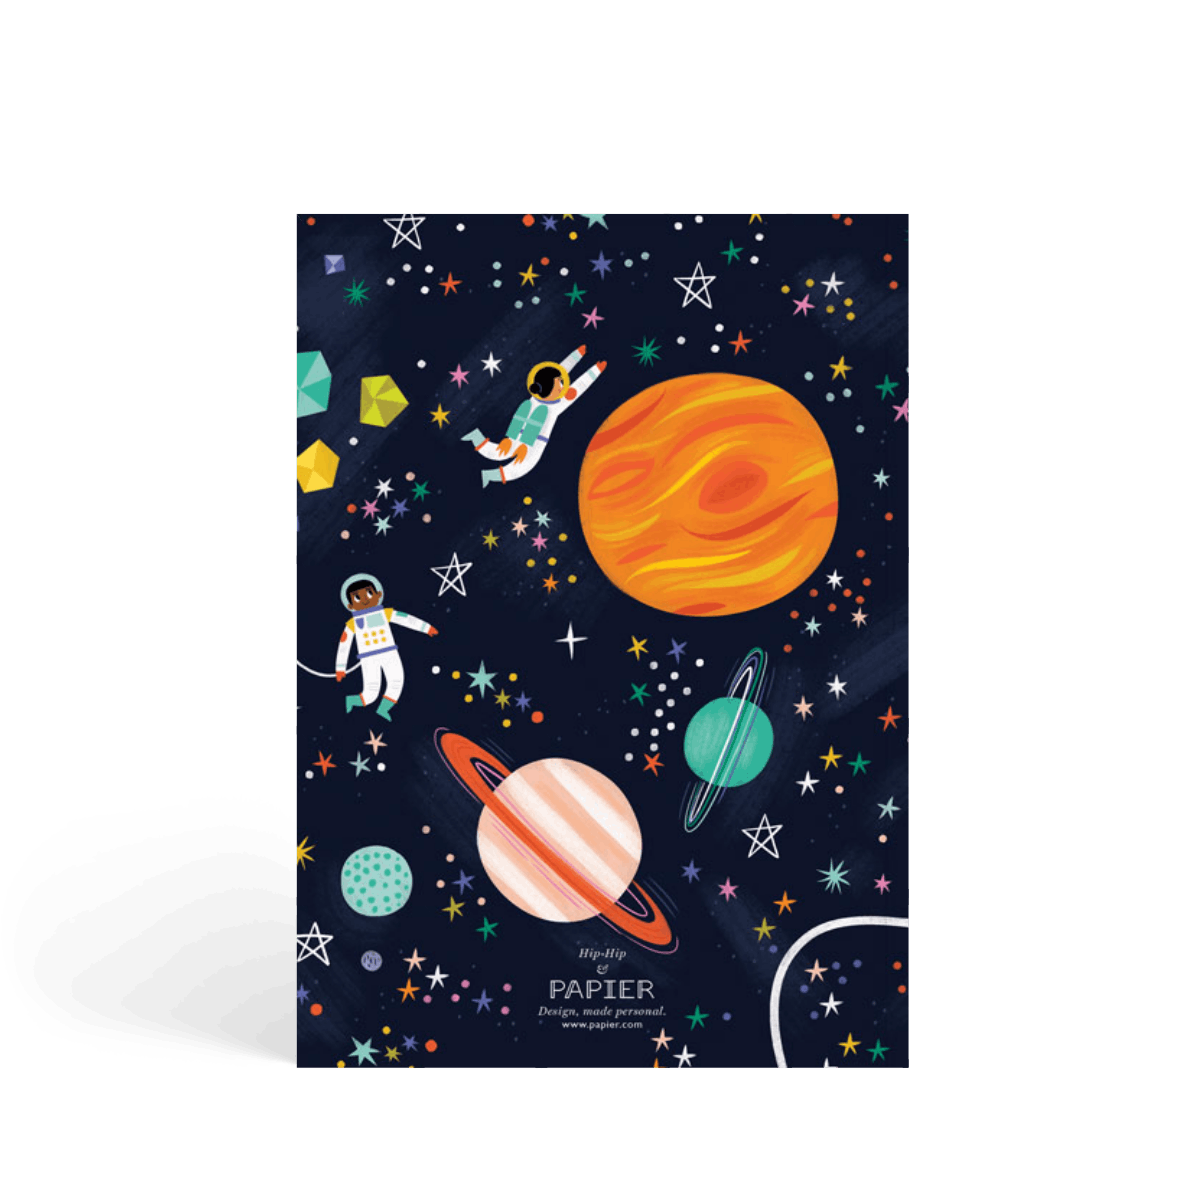 Https%3a%2f%2fwww.papier.com%2fproduct image%2f31632%2f5%2fastronaut girl iv 7946 back 1511375977.png?ixlib=rb 1.1